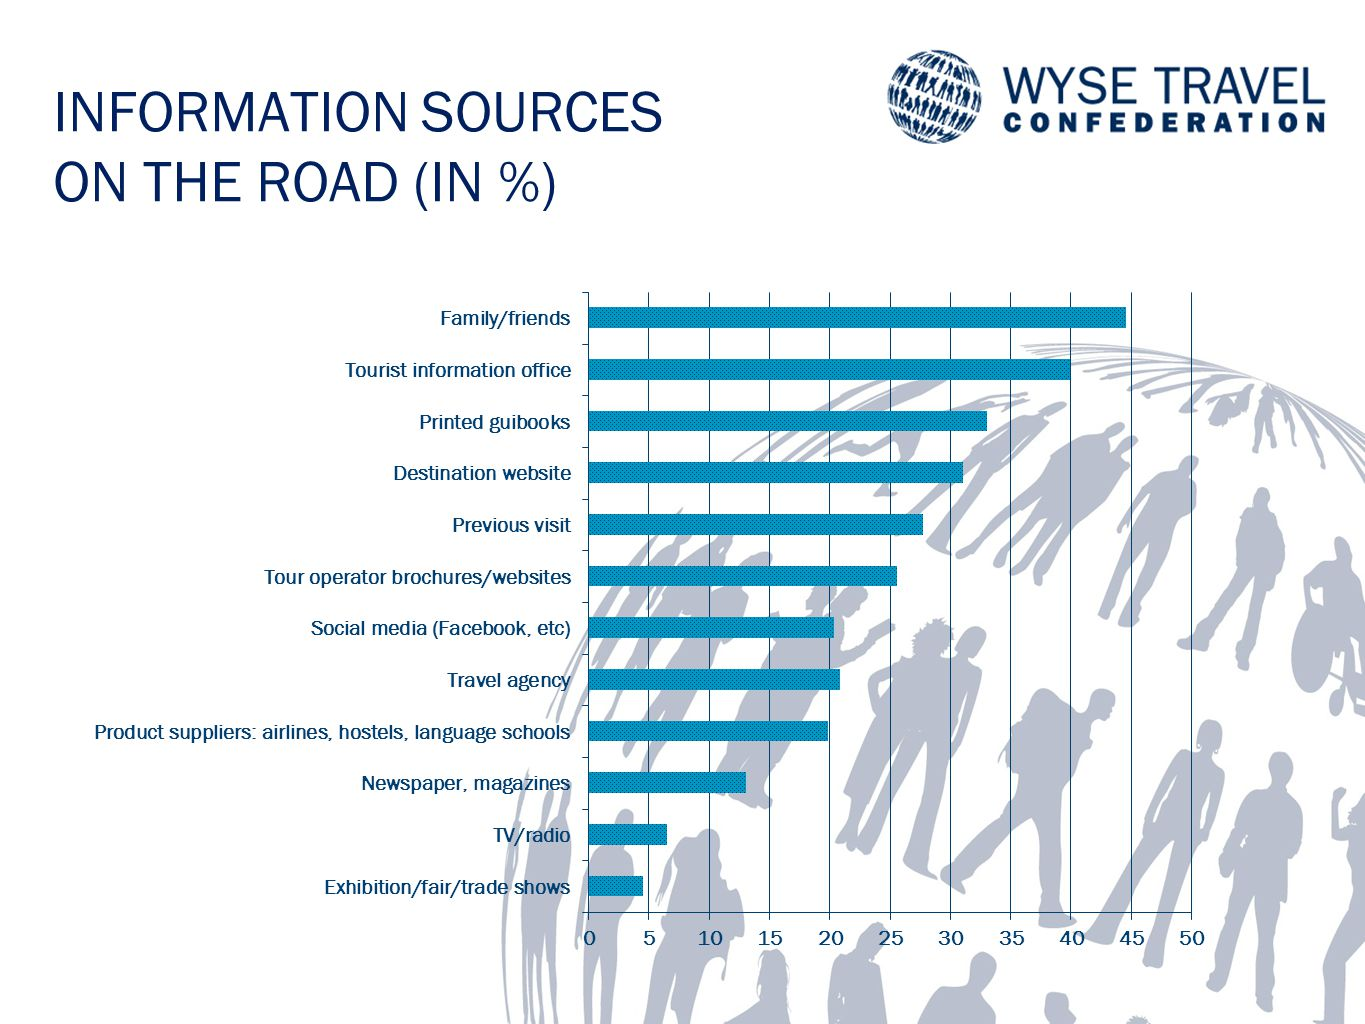 INFORMATION SOURCES ON THE ROAD (IN %)